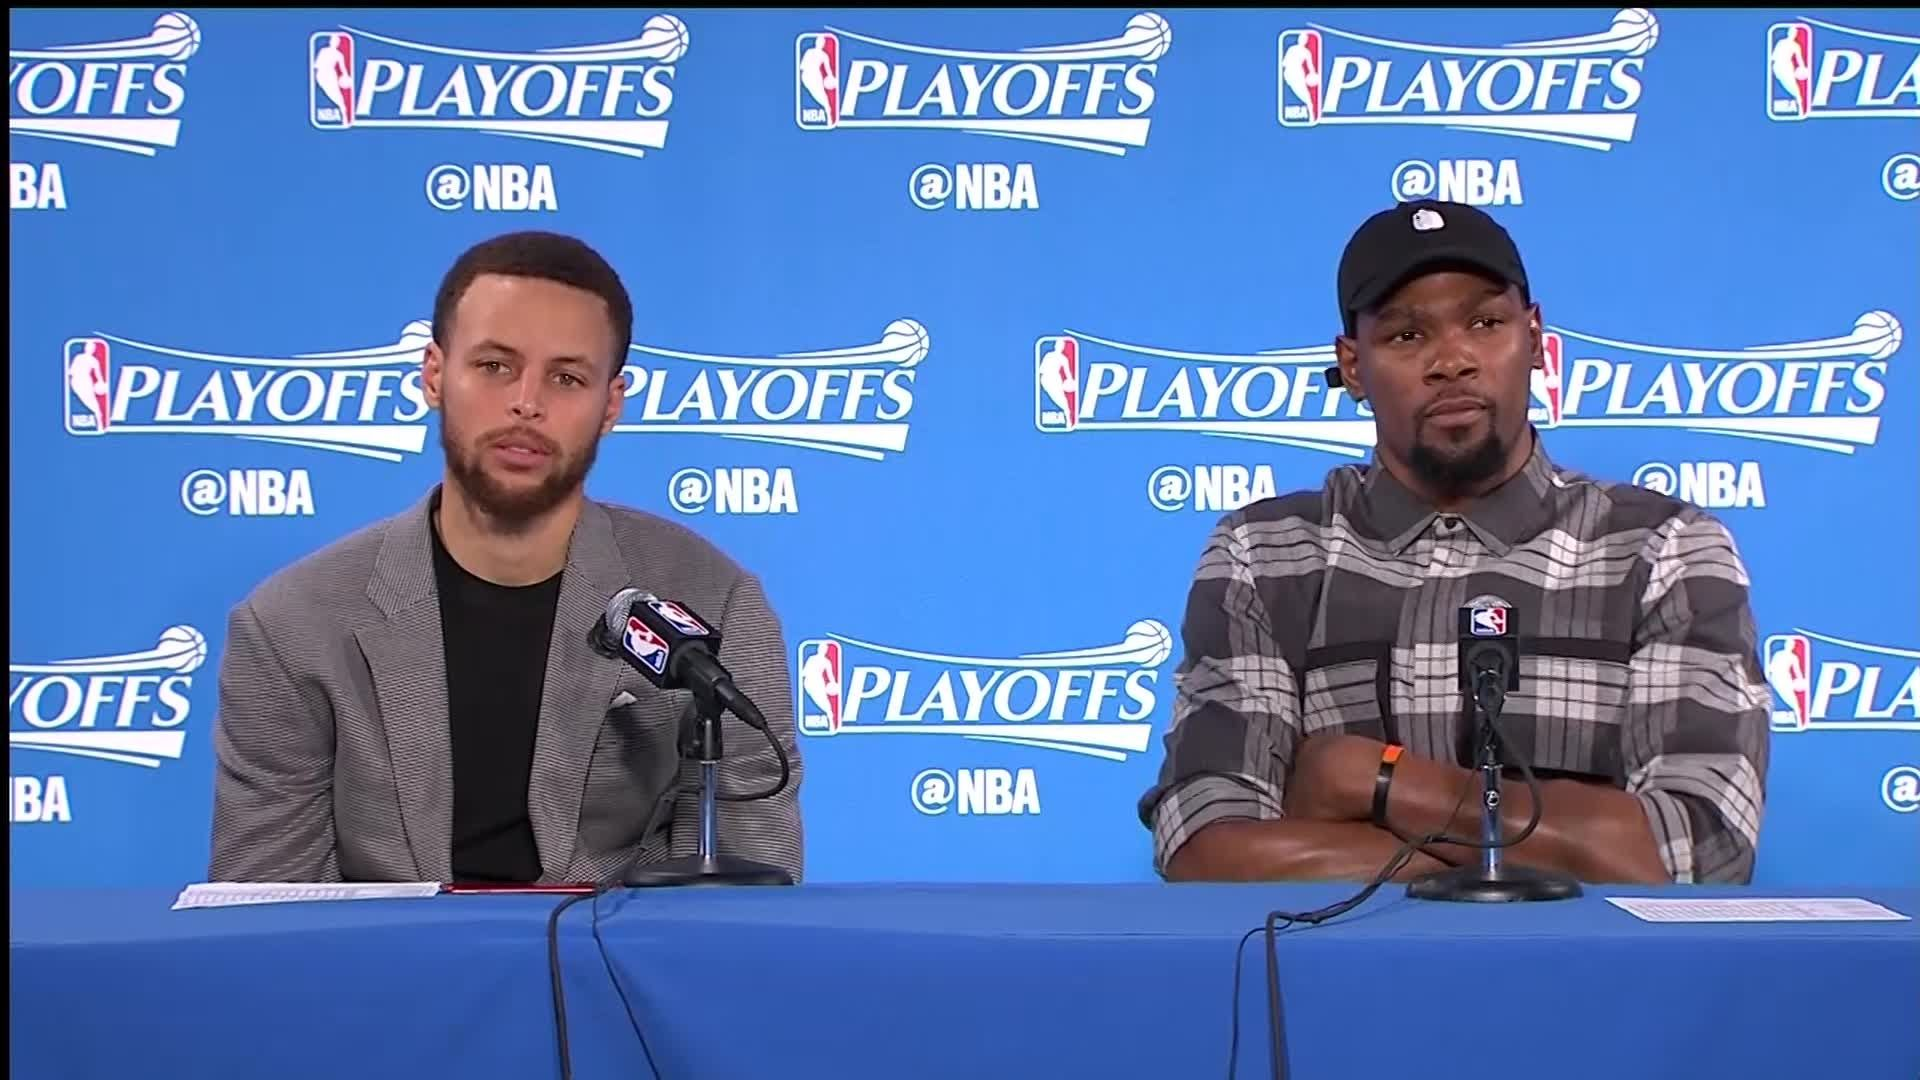 Raw Video Stephen Curry, Kevin Durant Share Podium